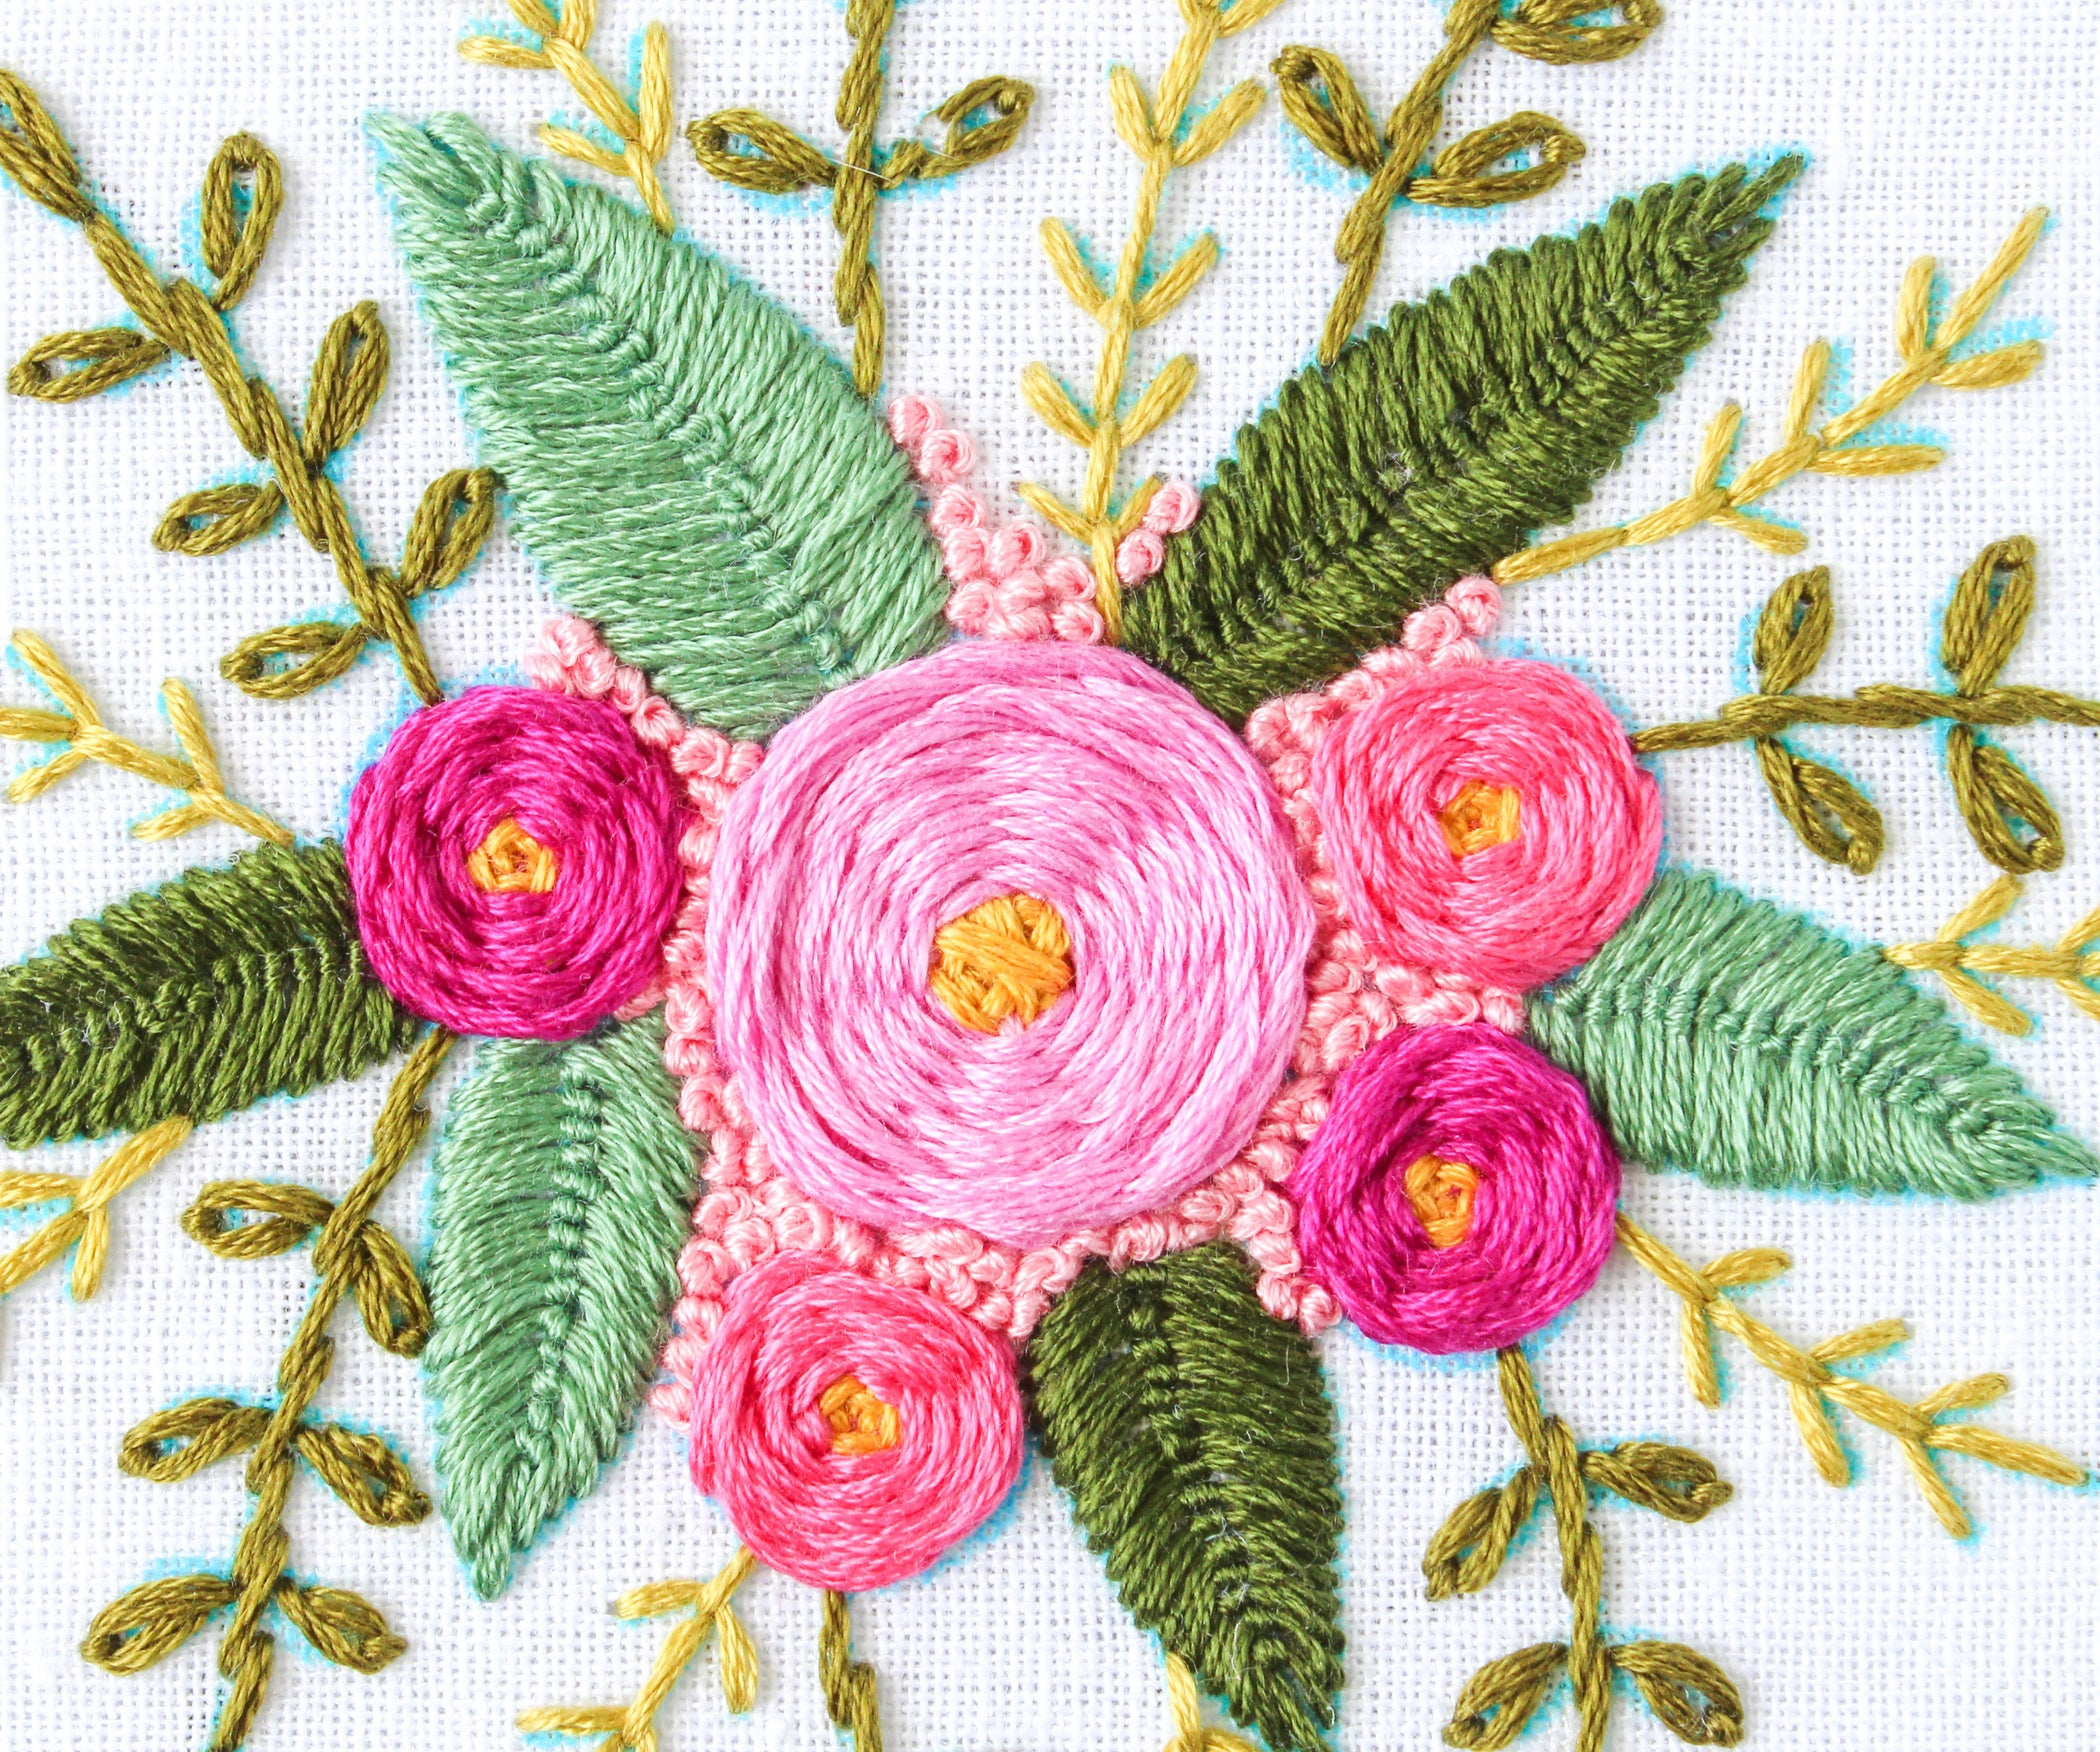 How To Hand Embroider Flowers 7 Steps With Pictures